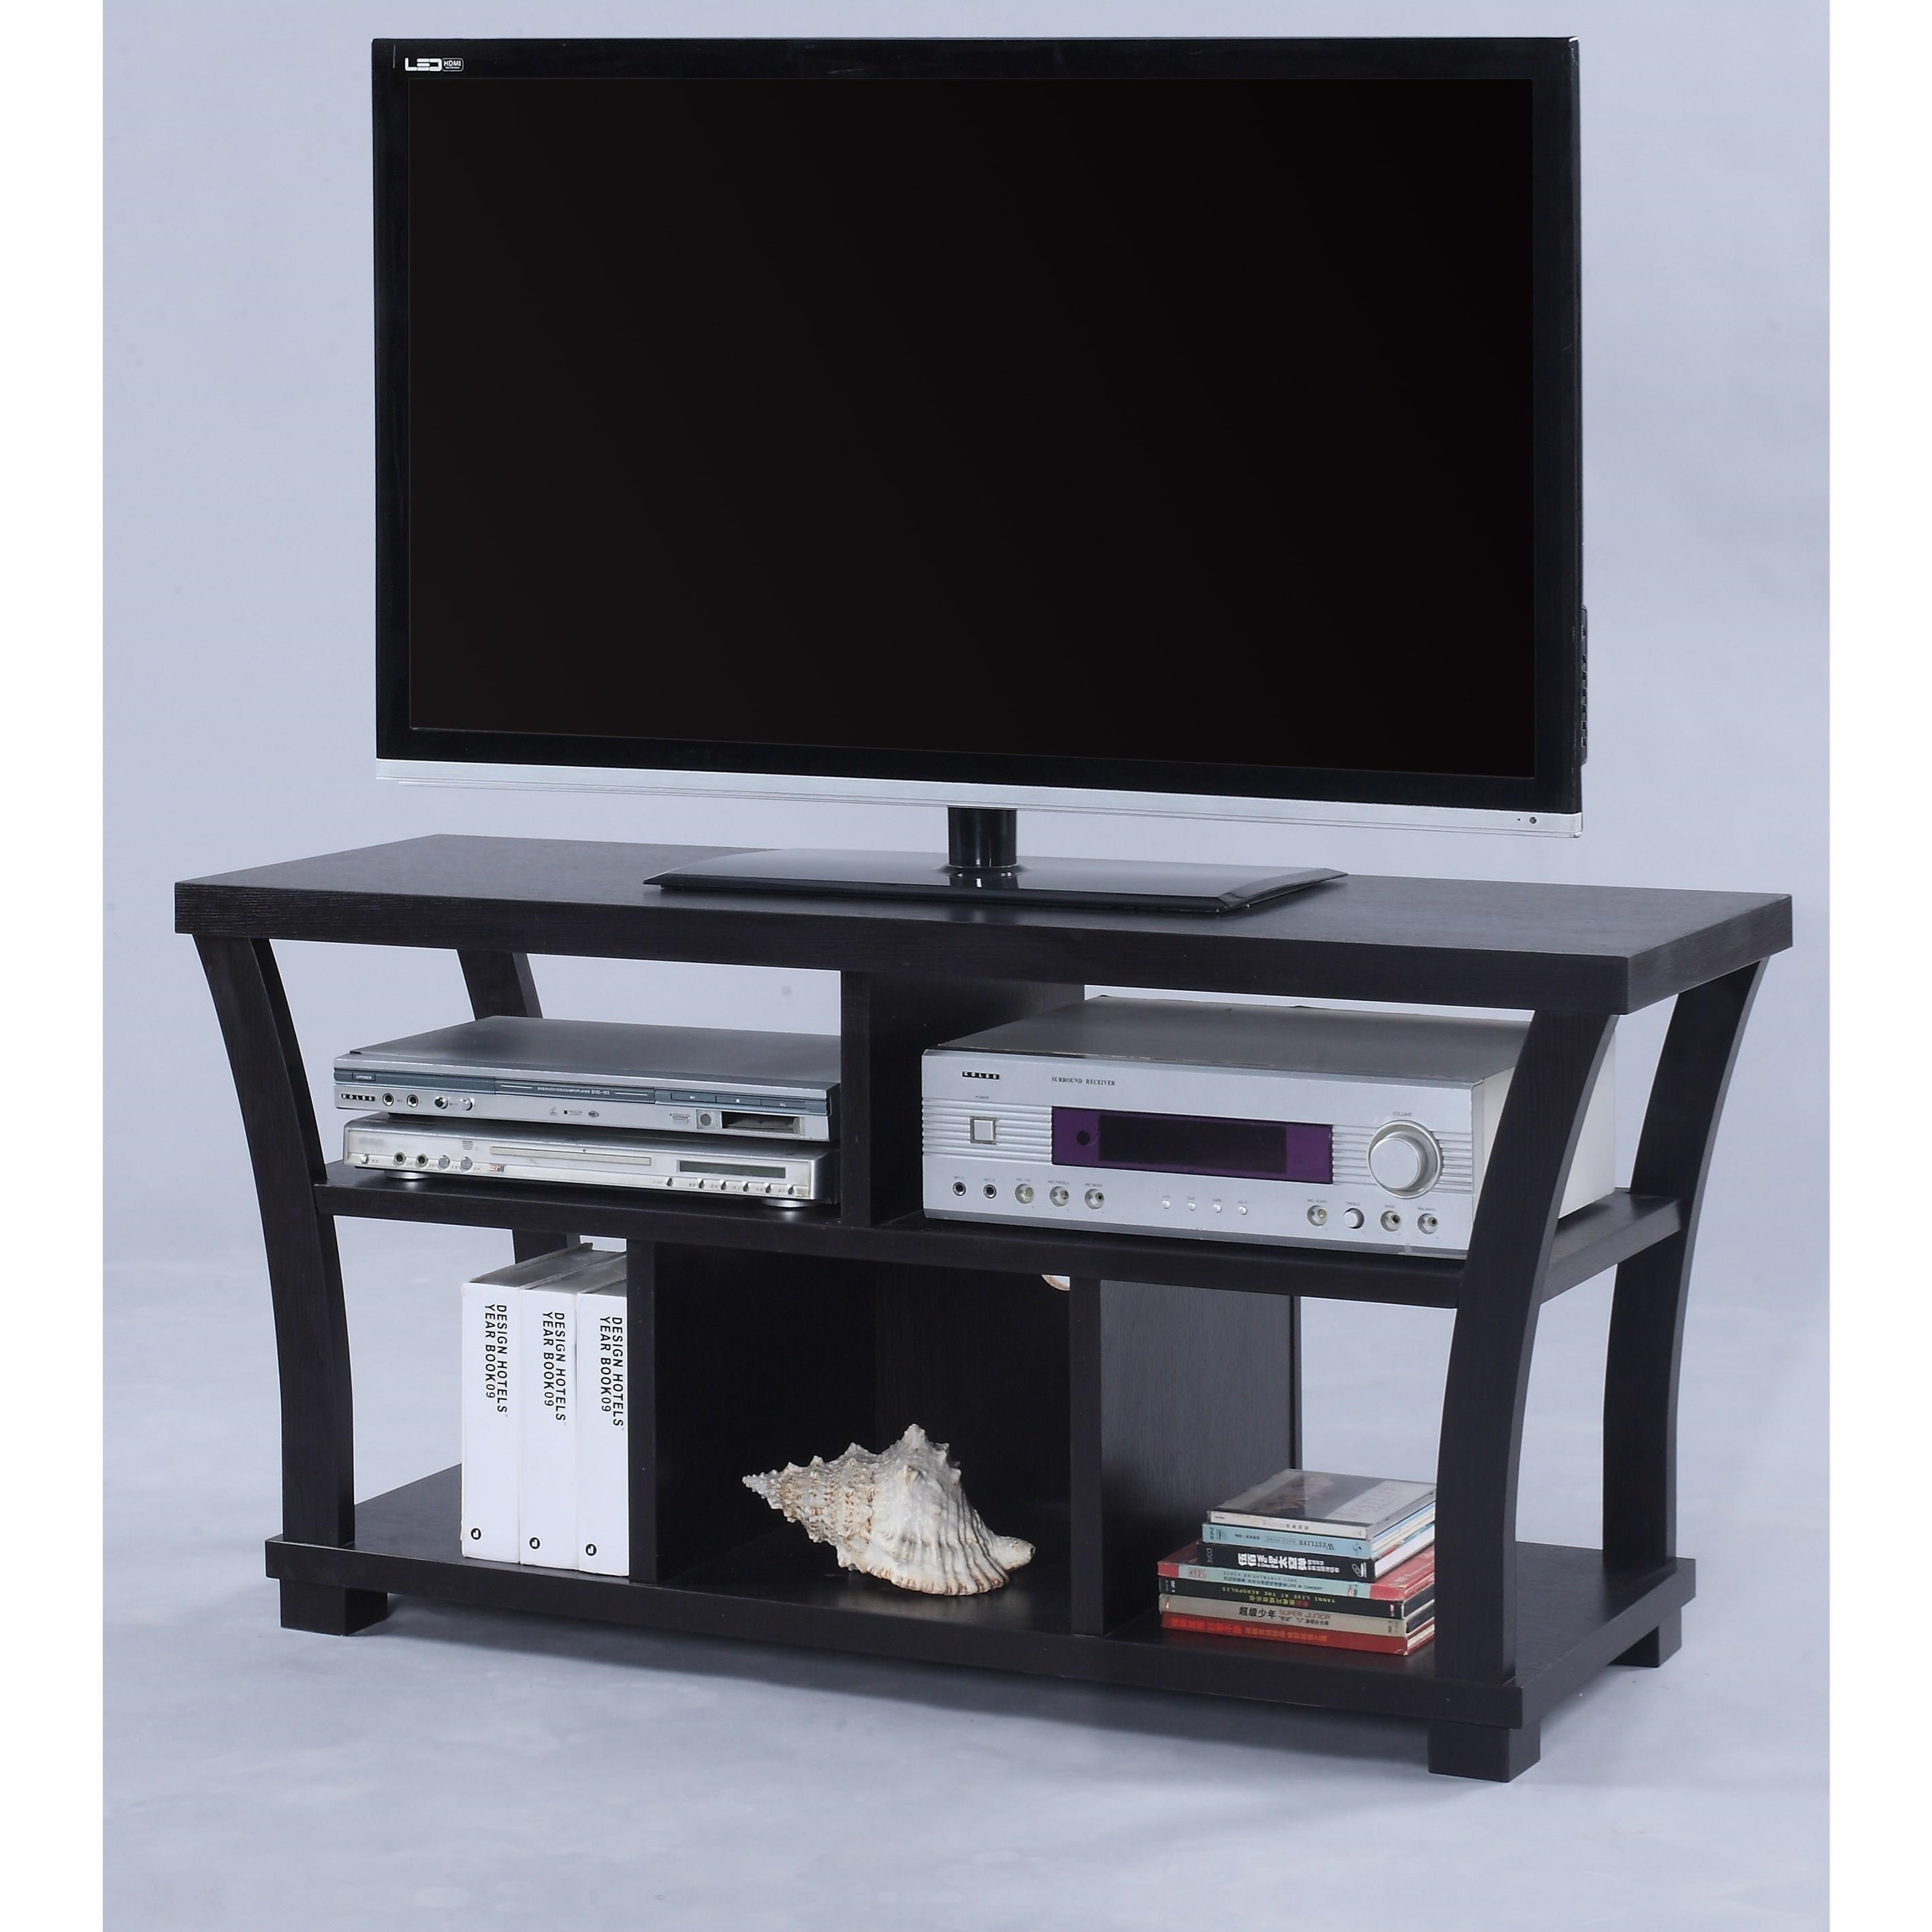 Draper TV Stand by Crown Mark at Northeast Factory Direct